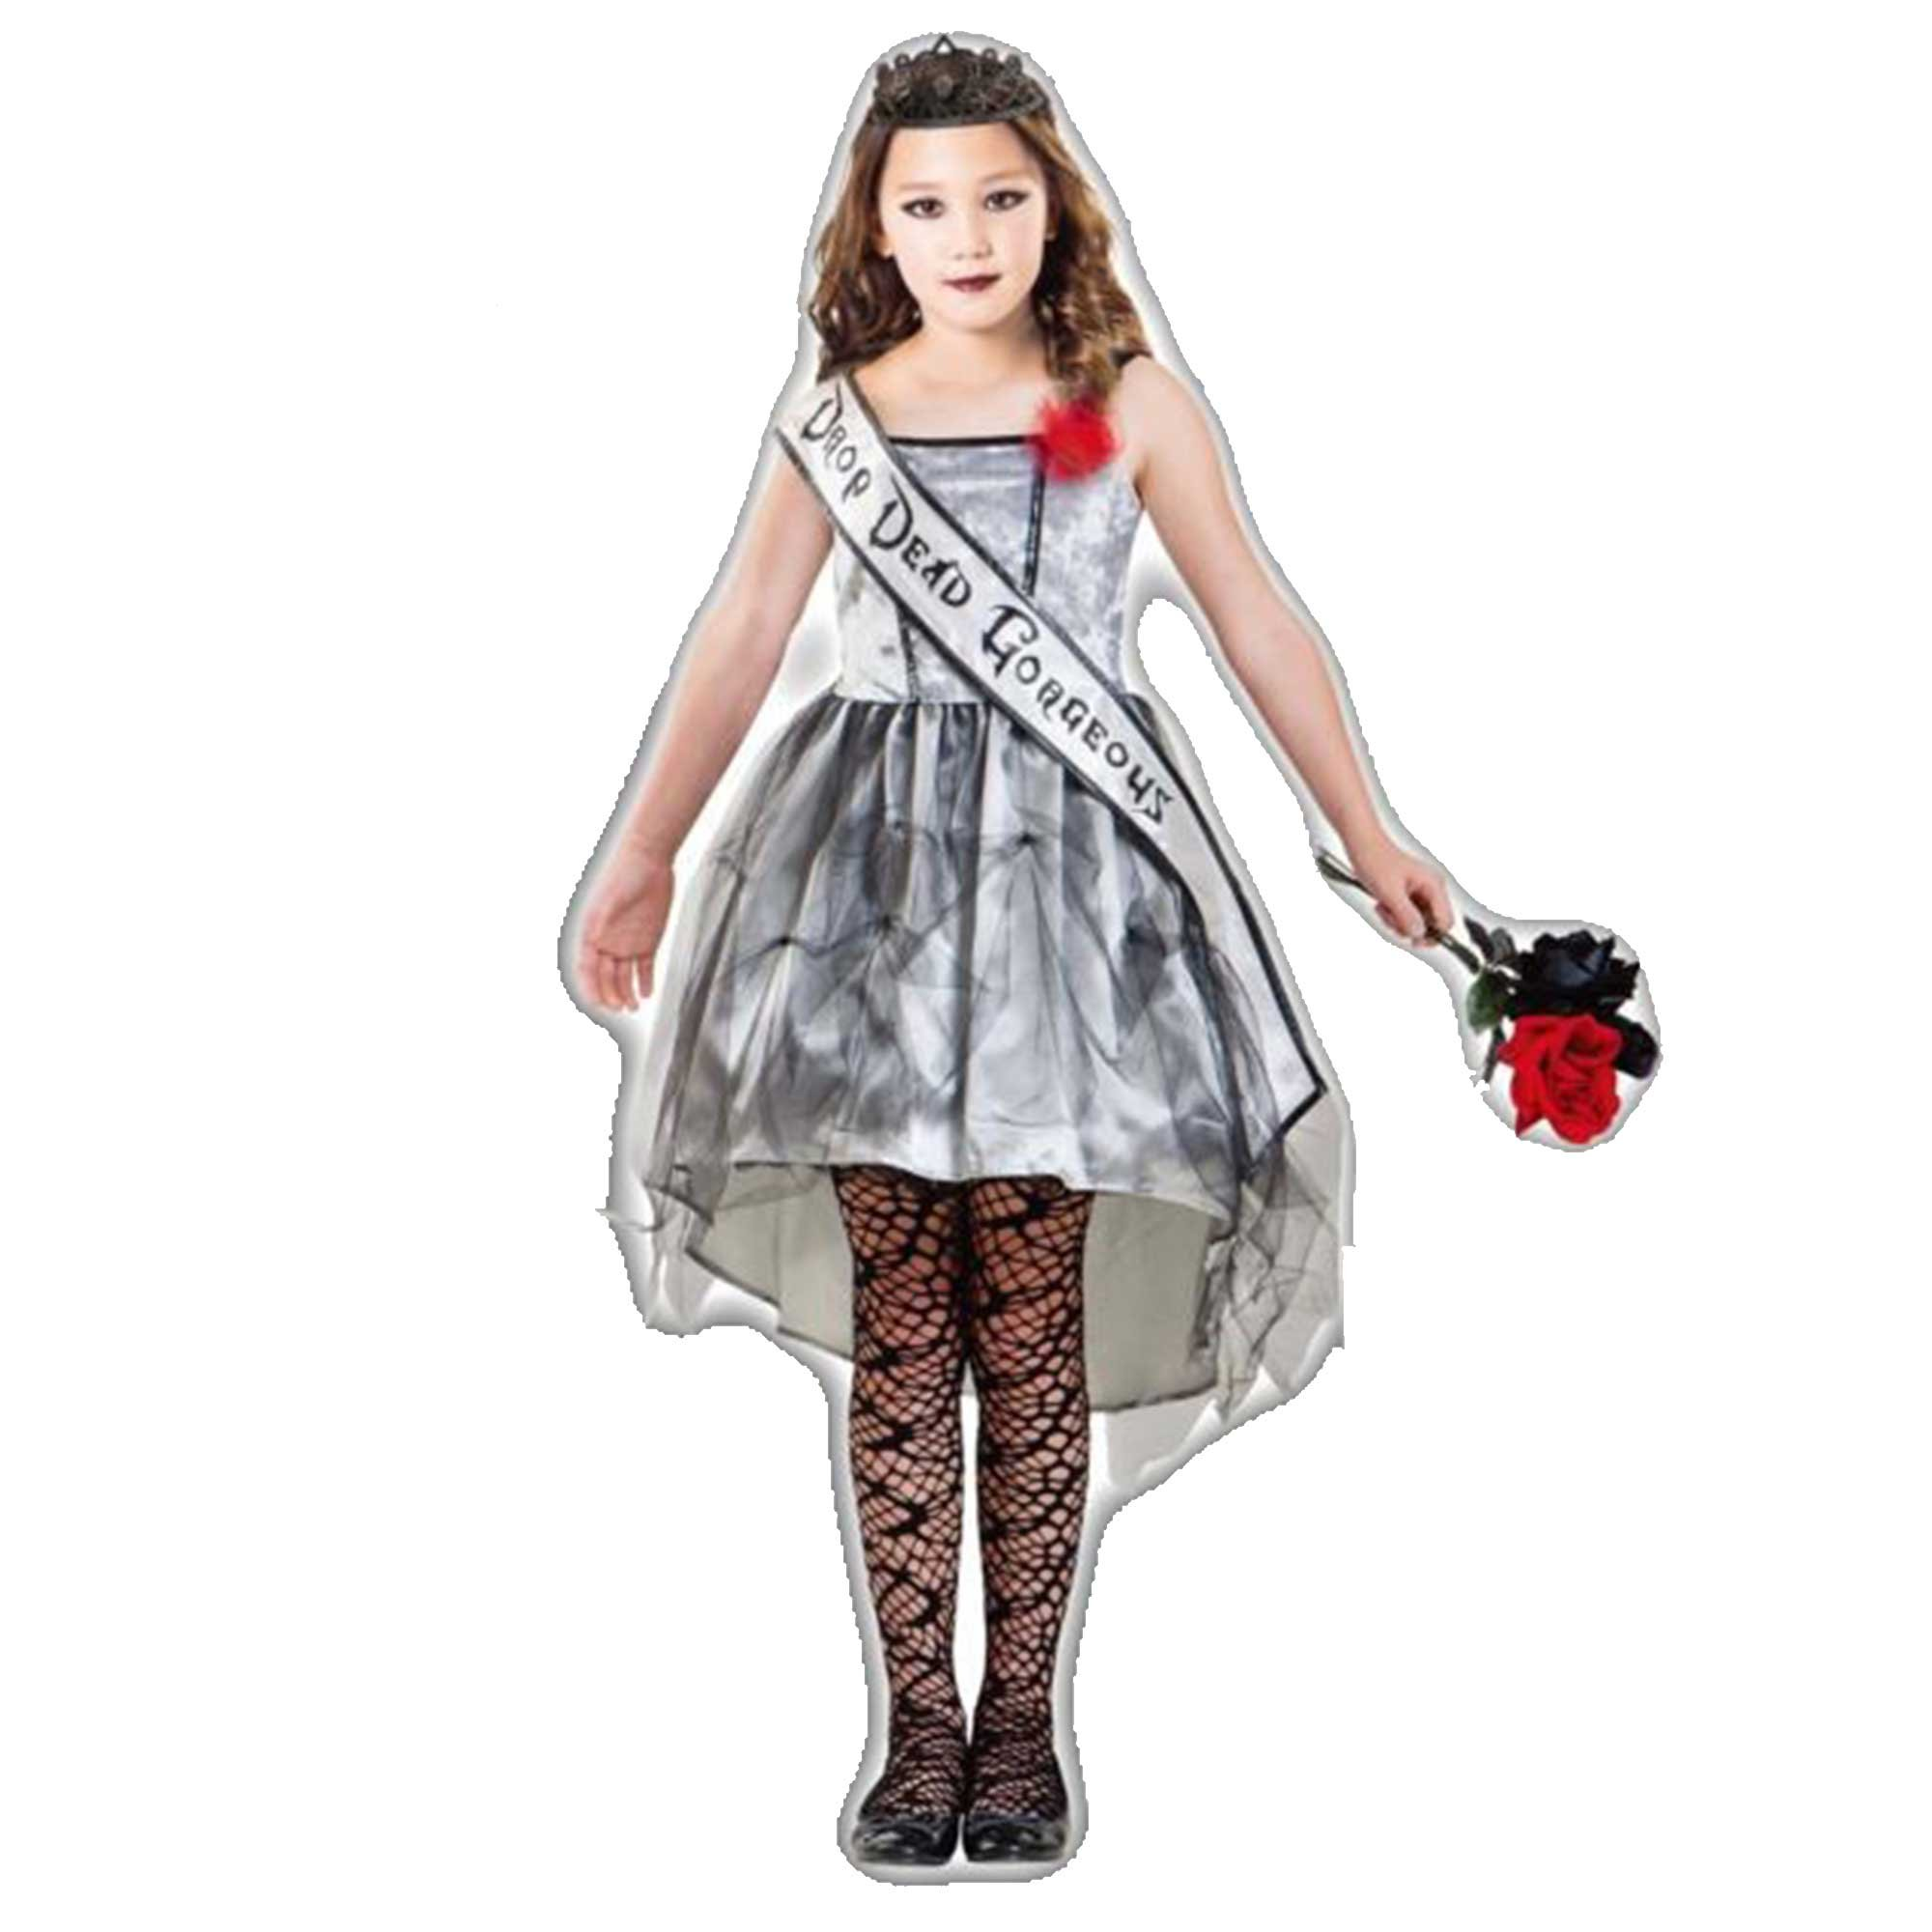 Costume Gothic Beauty Queen Girls 5-7 Years